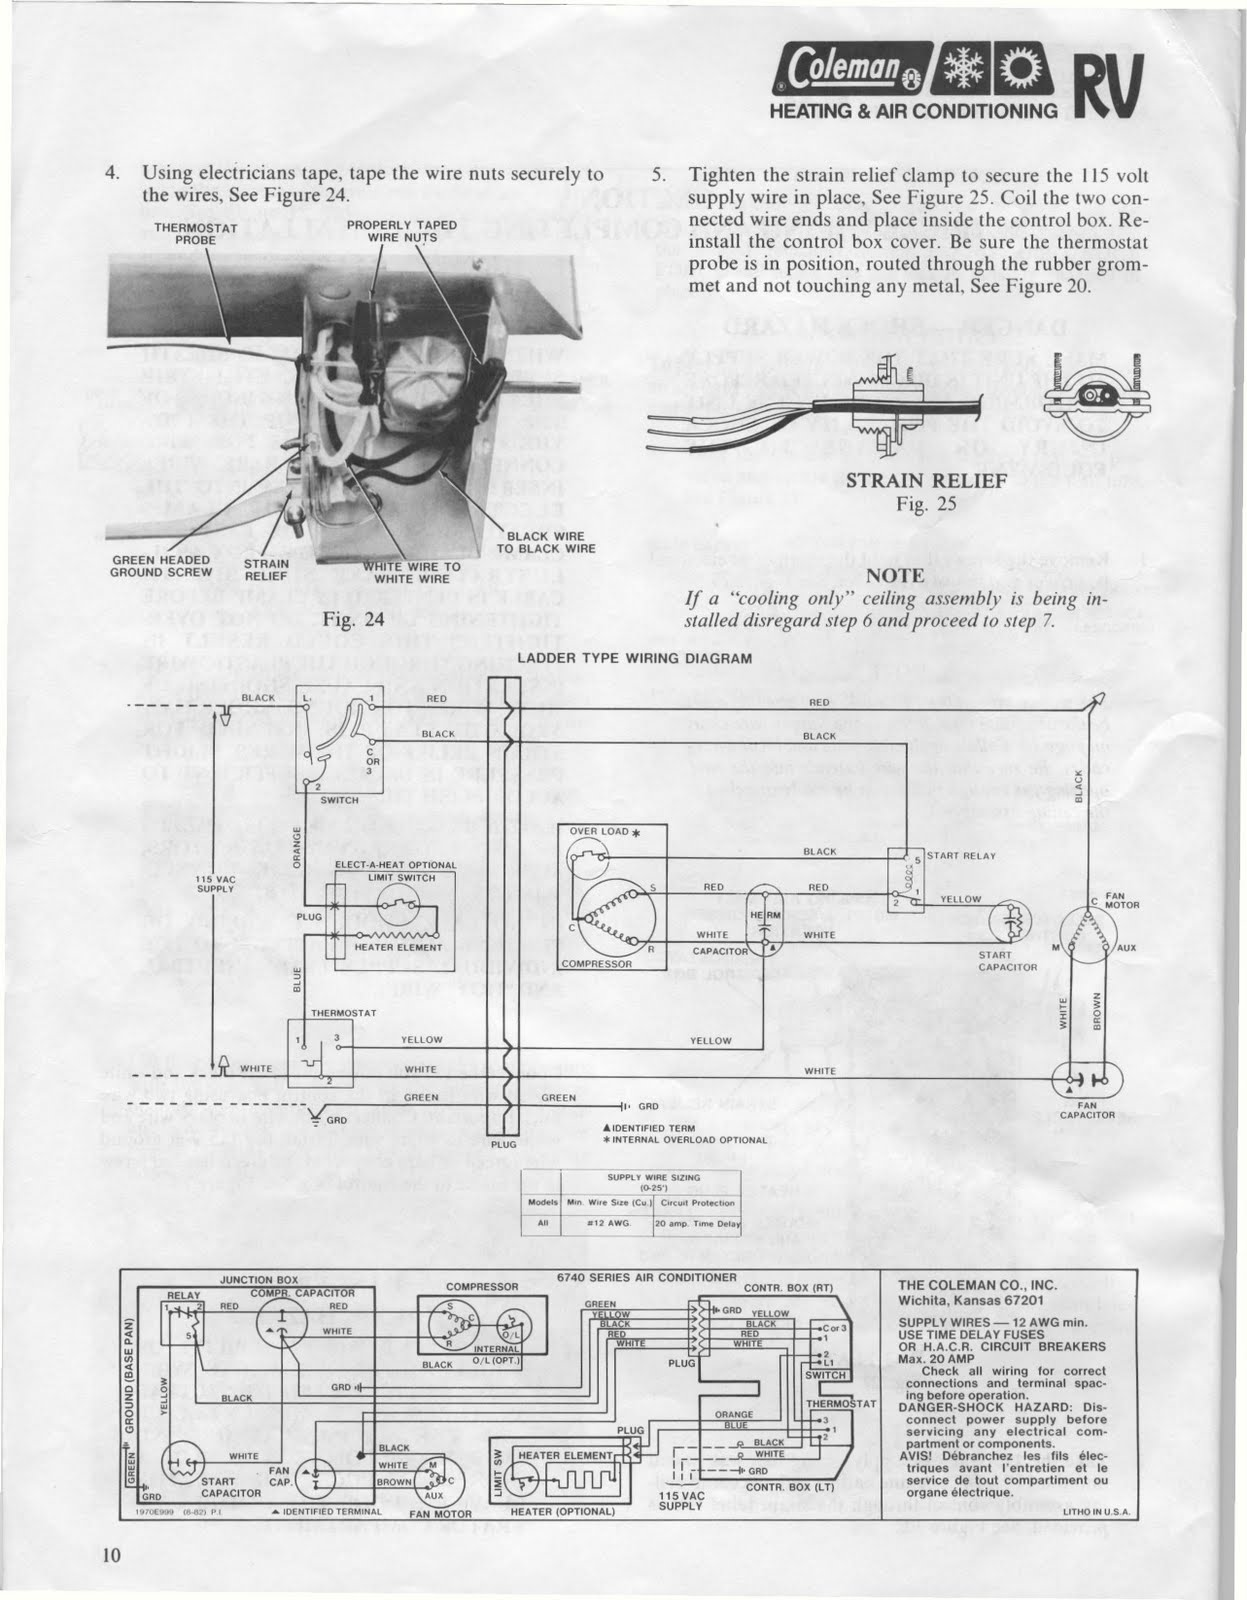 94 ford 460 engine diagram 1990 ford 460 engine diagram #3